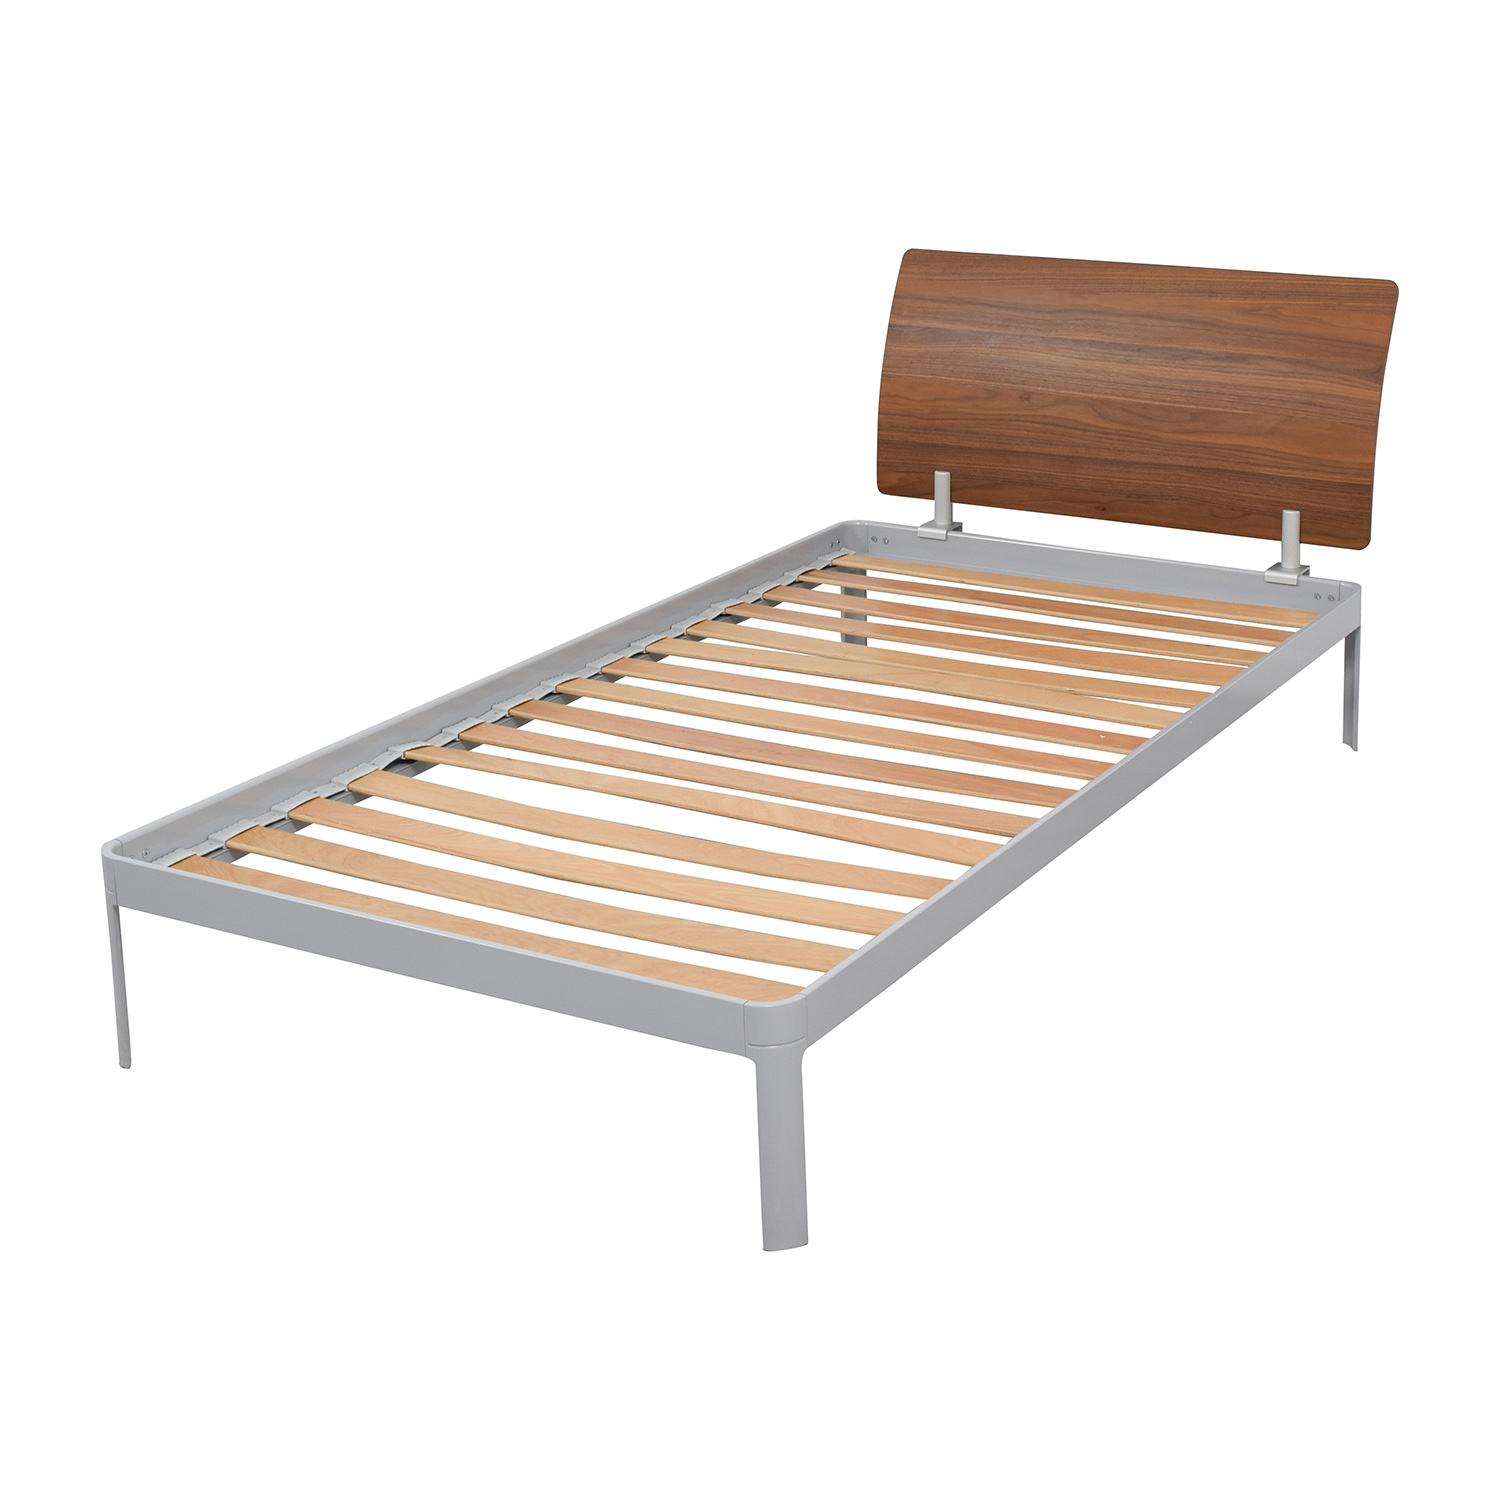 OFF Design Within Reach Design Within Reach Twin Platform Bed